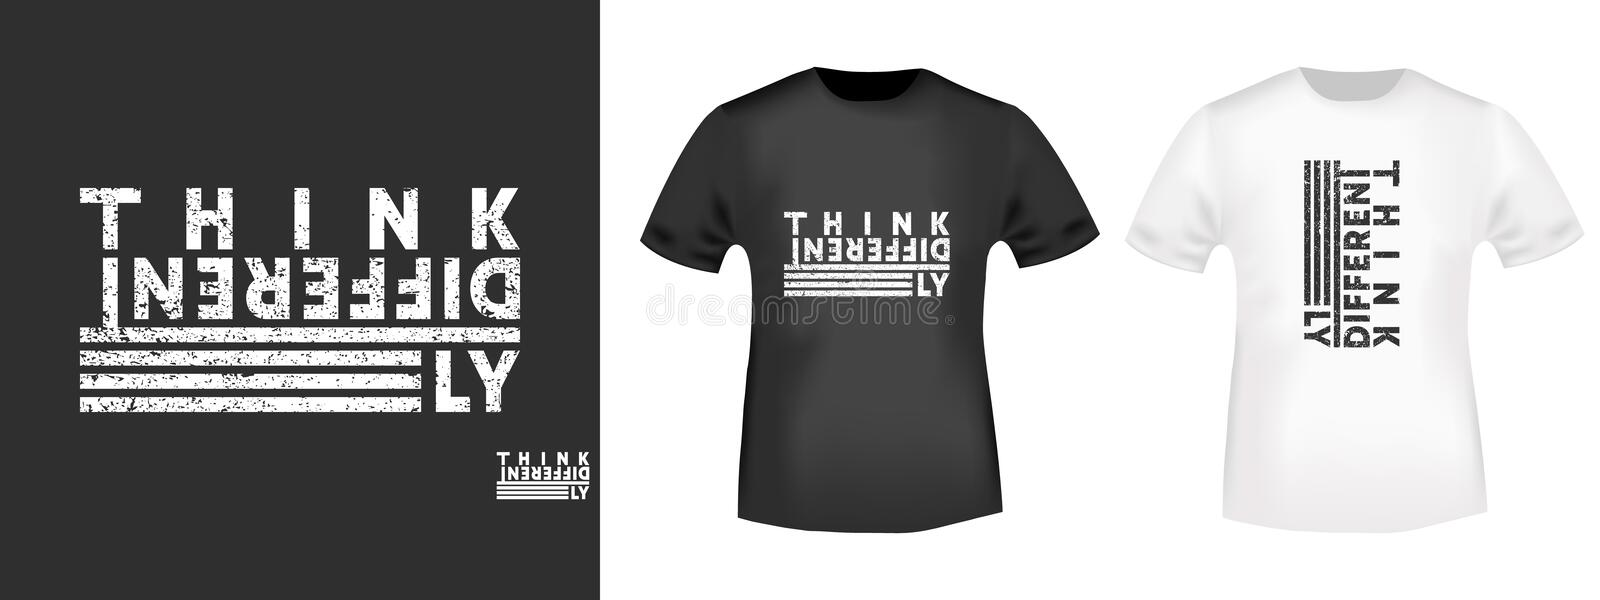 Think differently t-shirt print for t shirts applique, fashion slogan, badge, label clothing, jeans, and casual wear. Vector illustration vector illustration